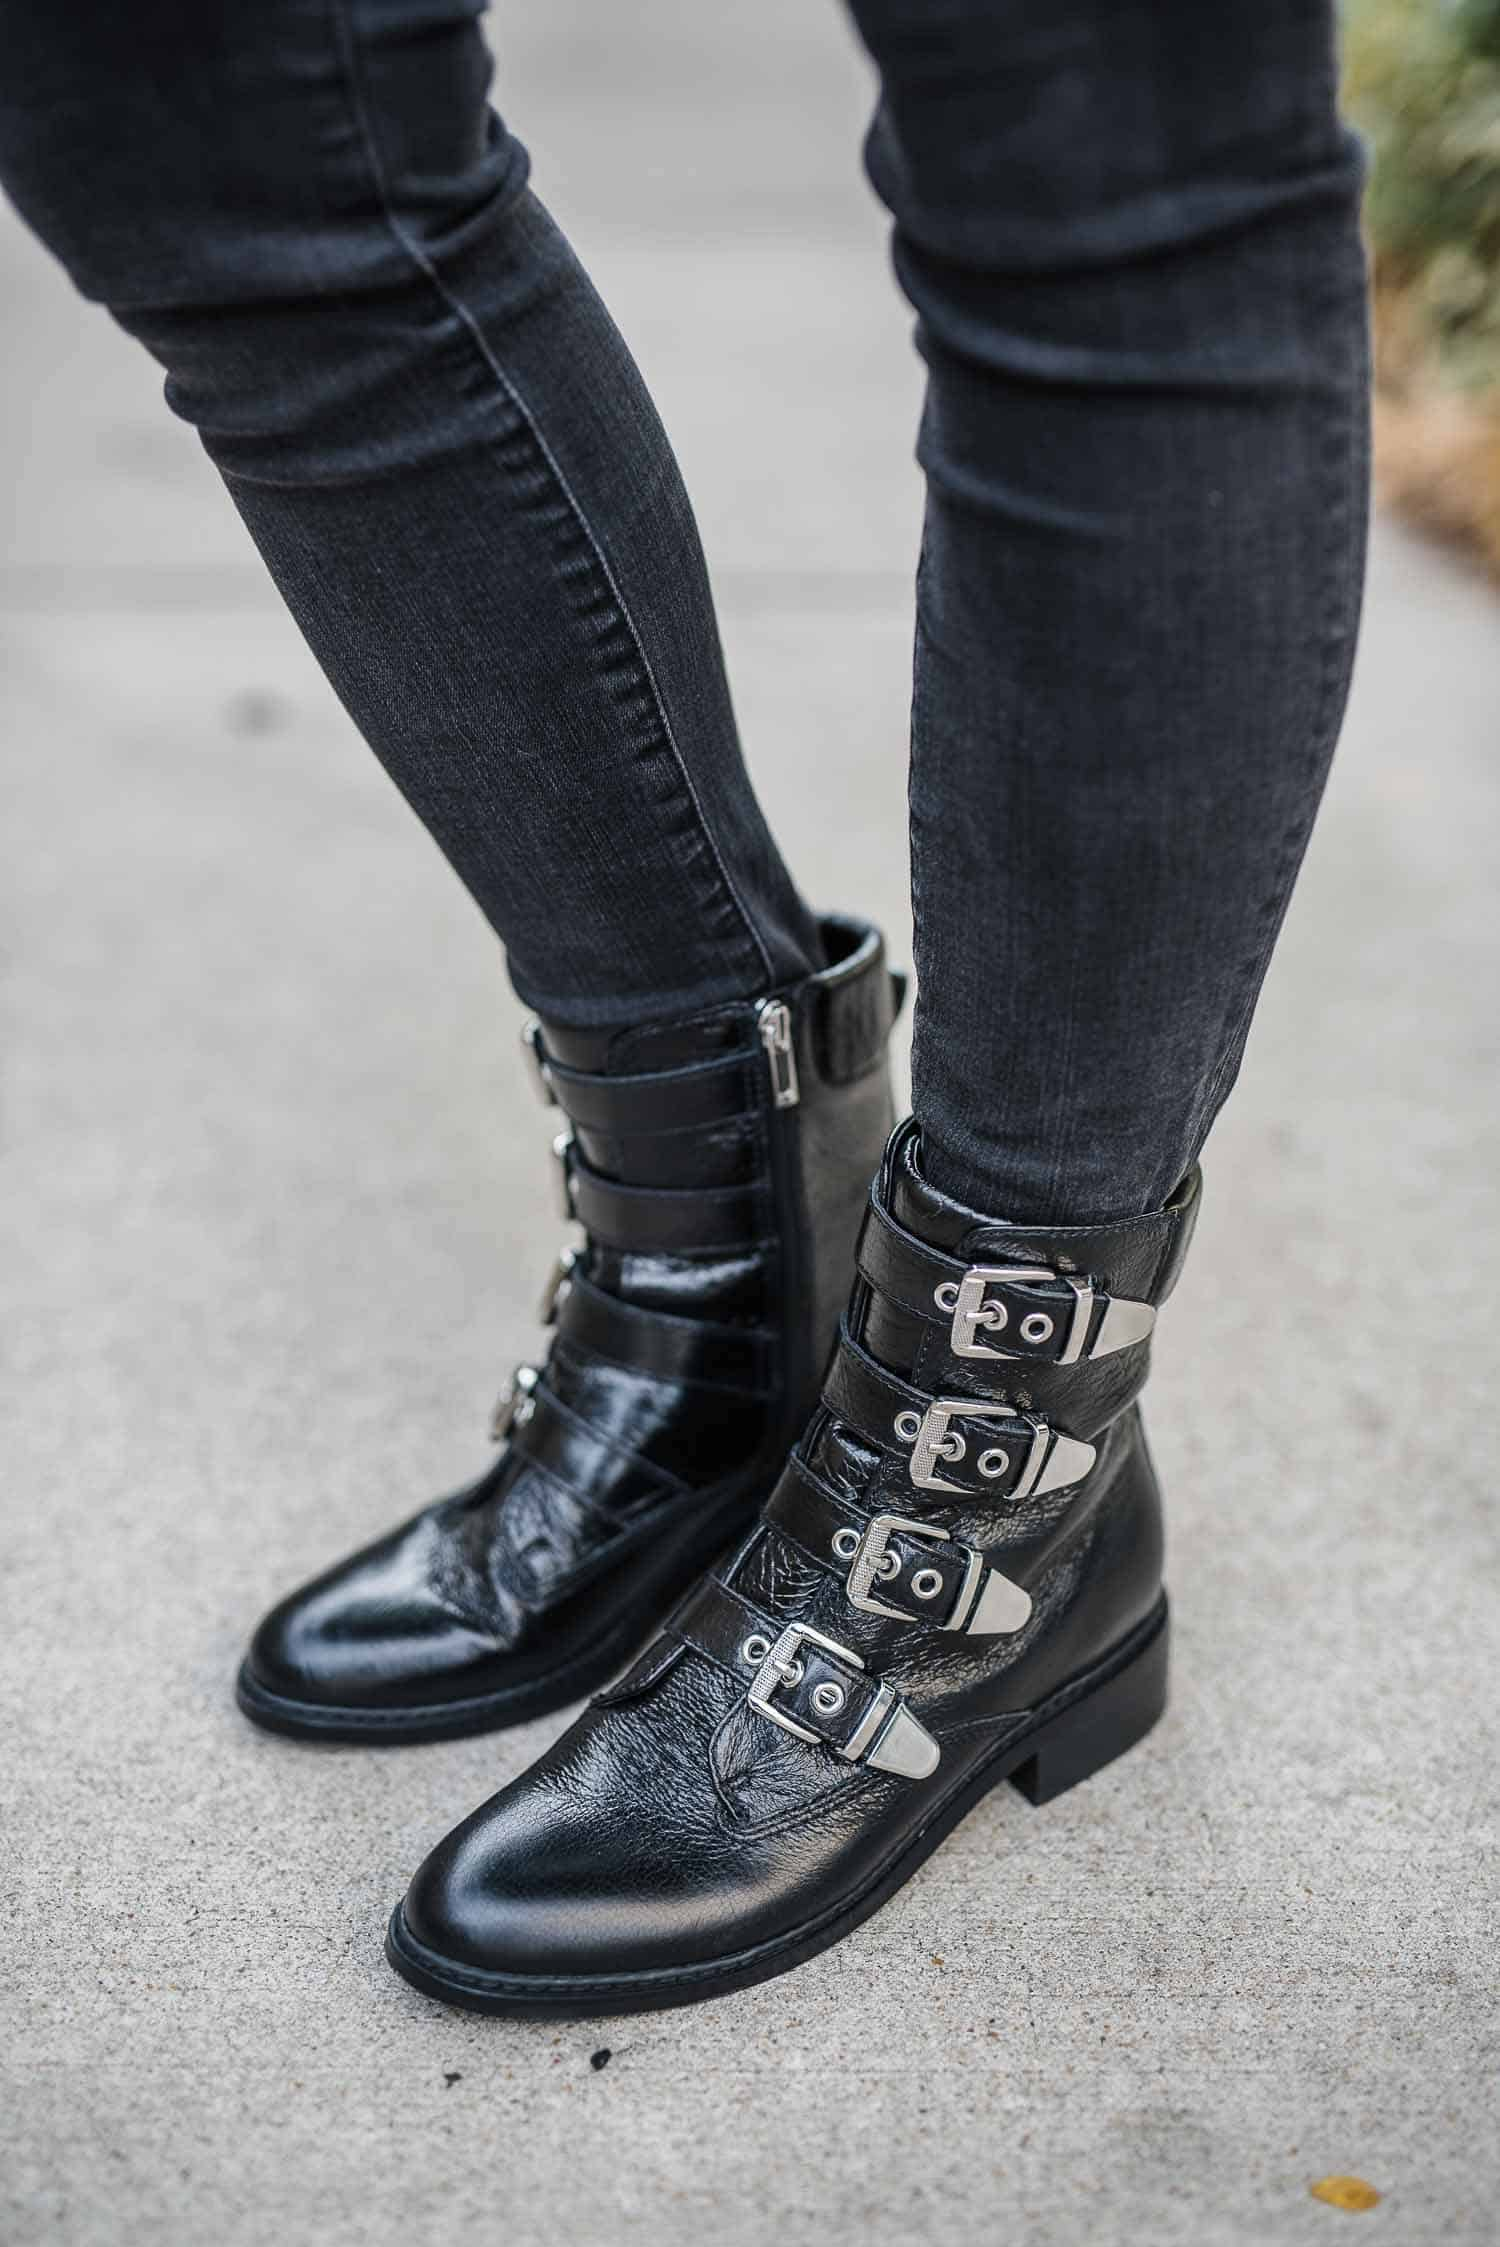 flat buckle boots, fall outfit ideas, black and grey outfit - My Style